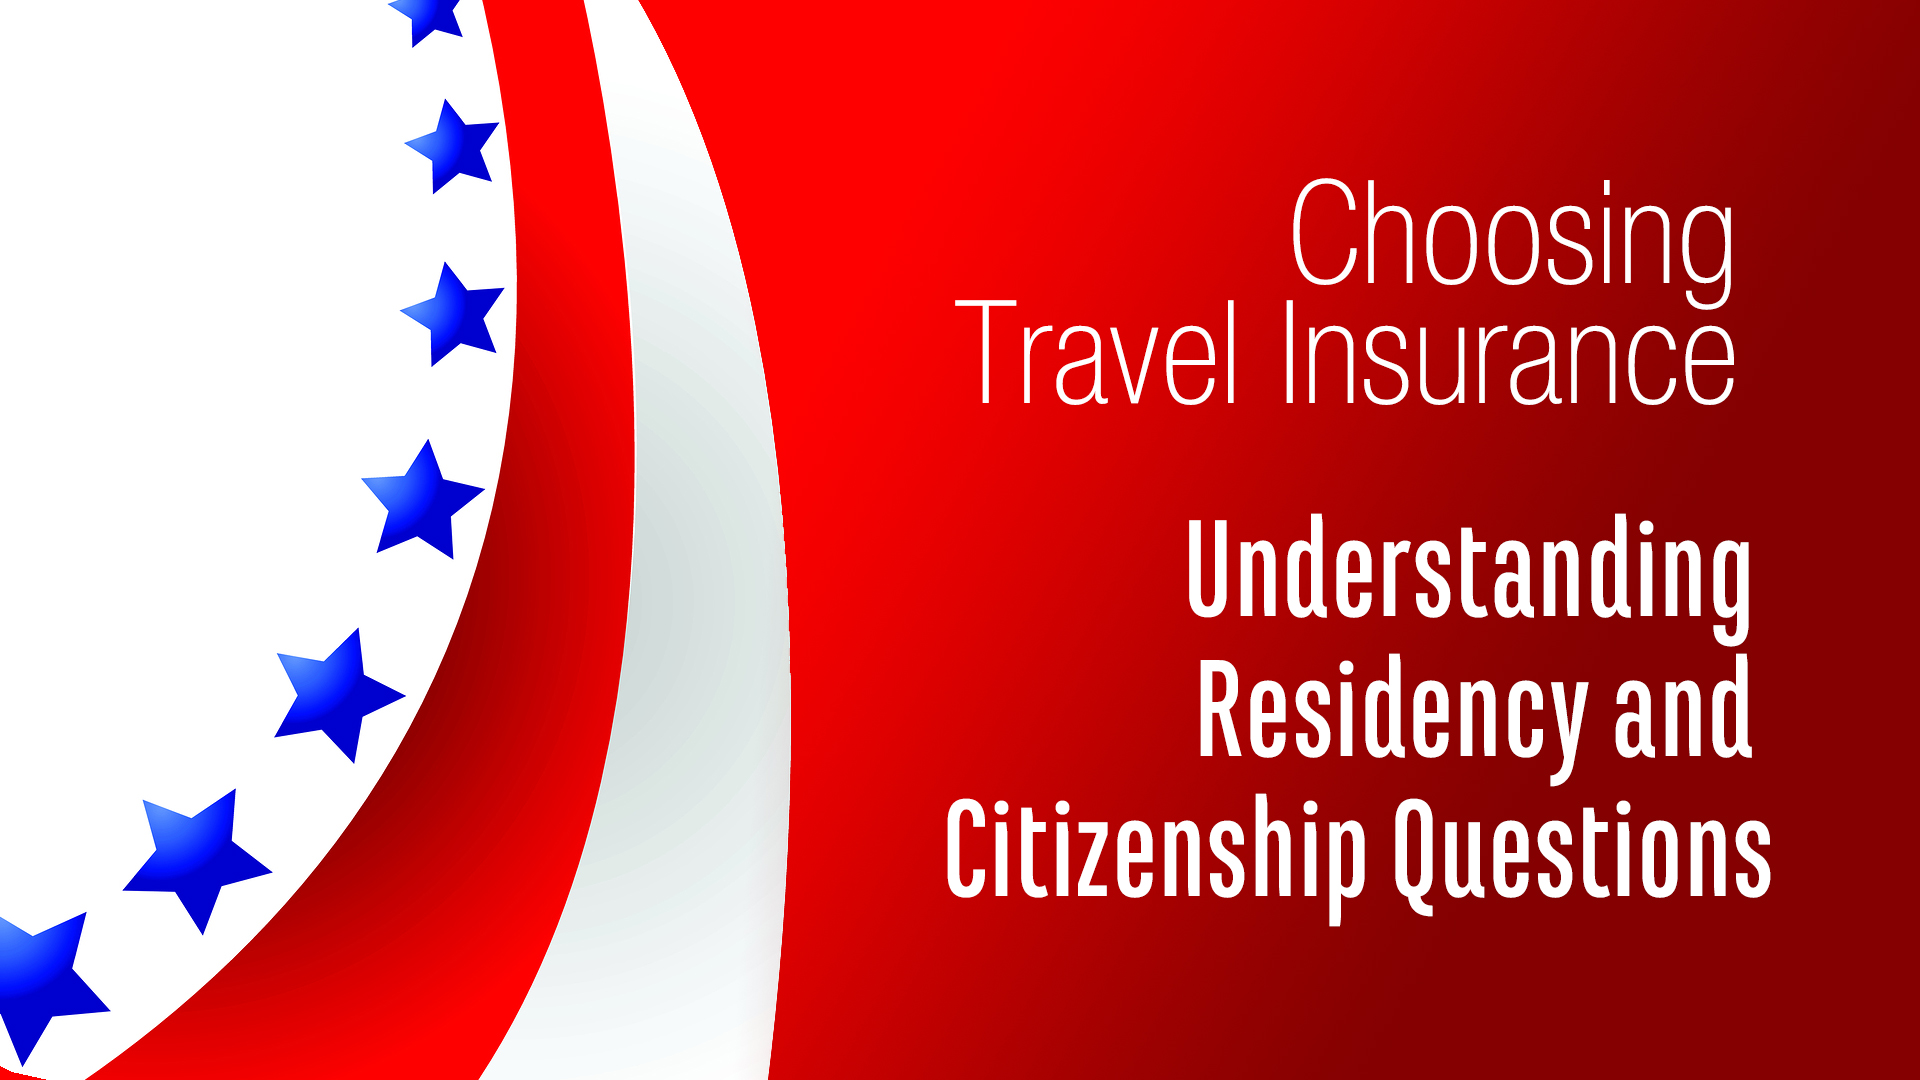 questions about travel insurance and residency